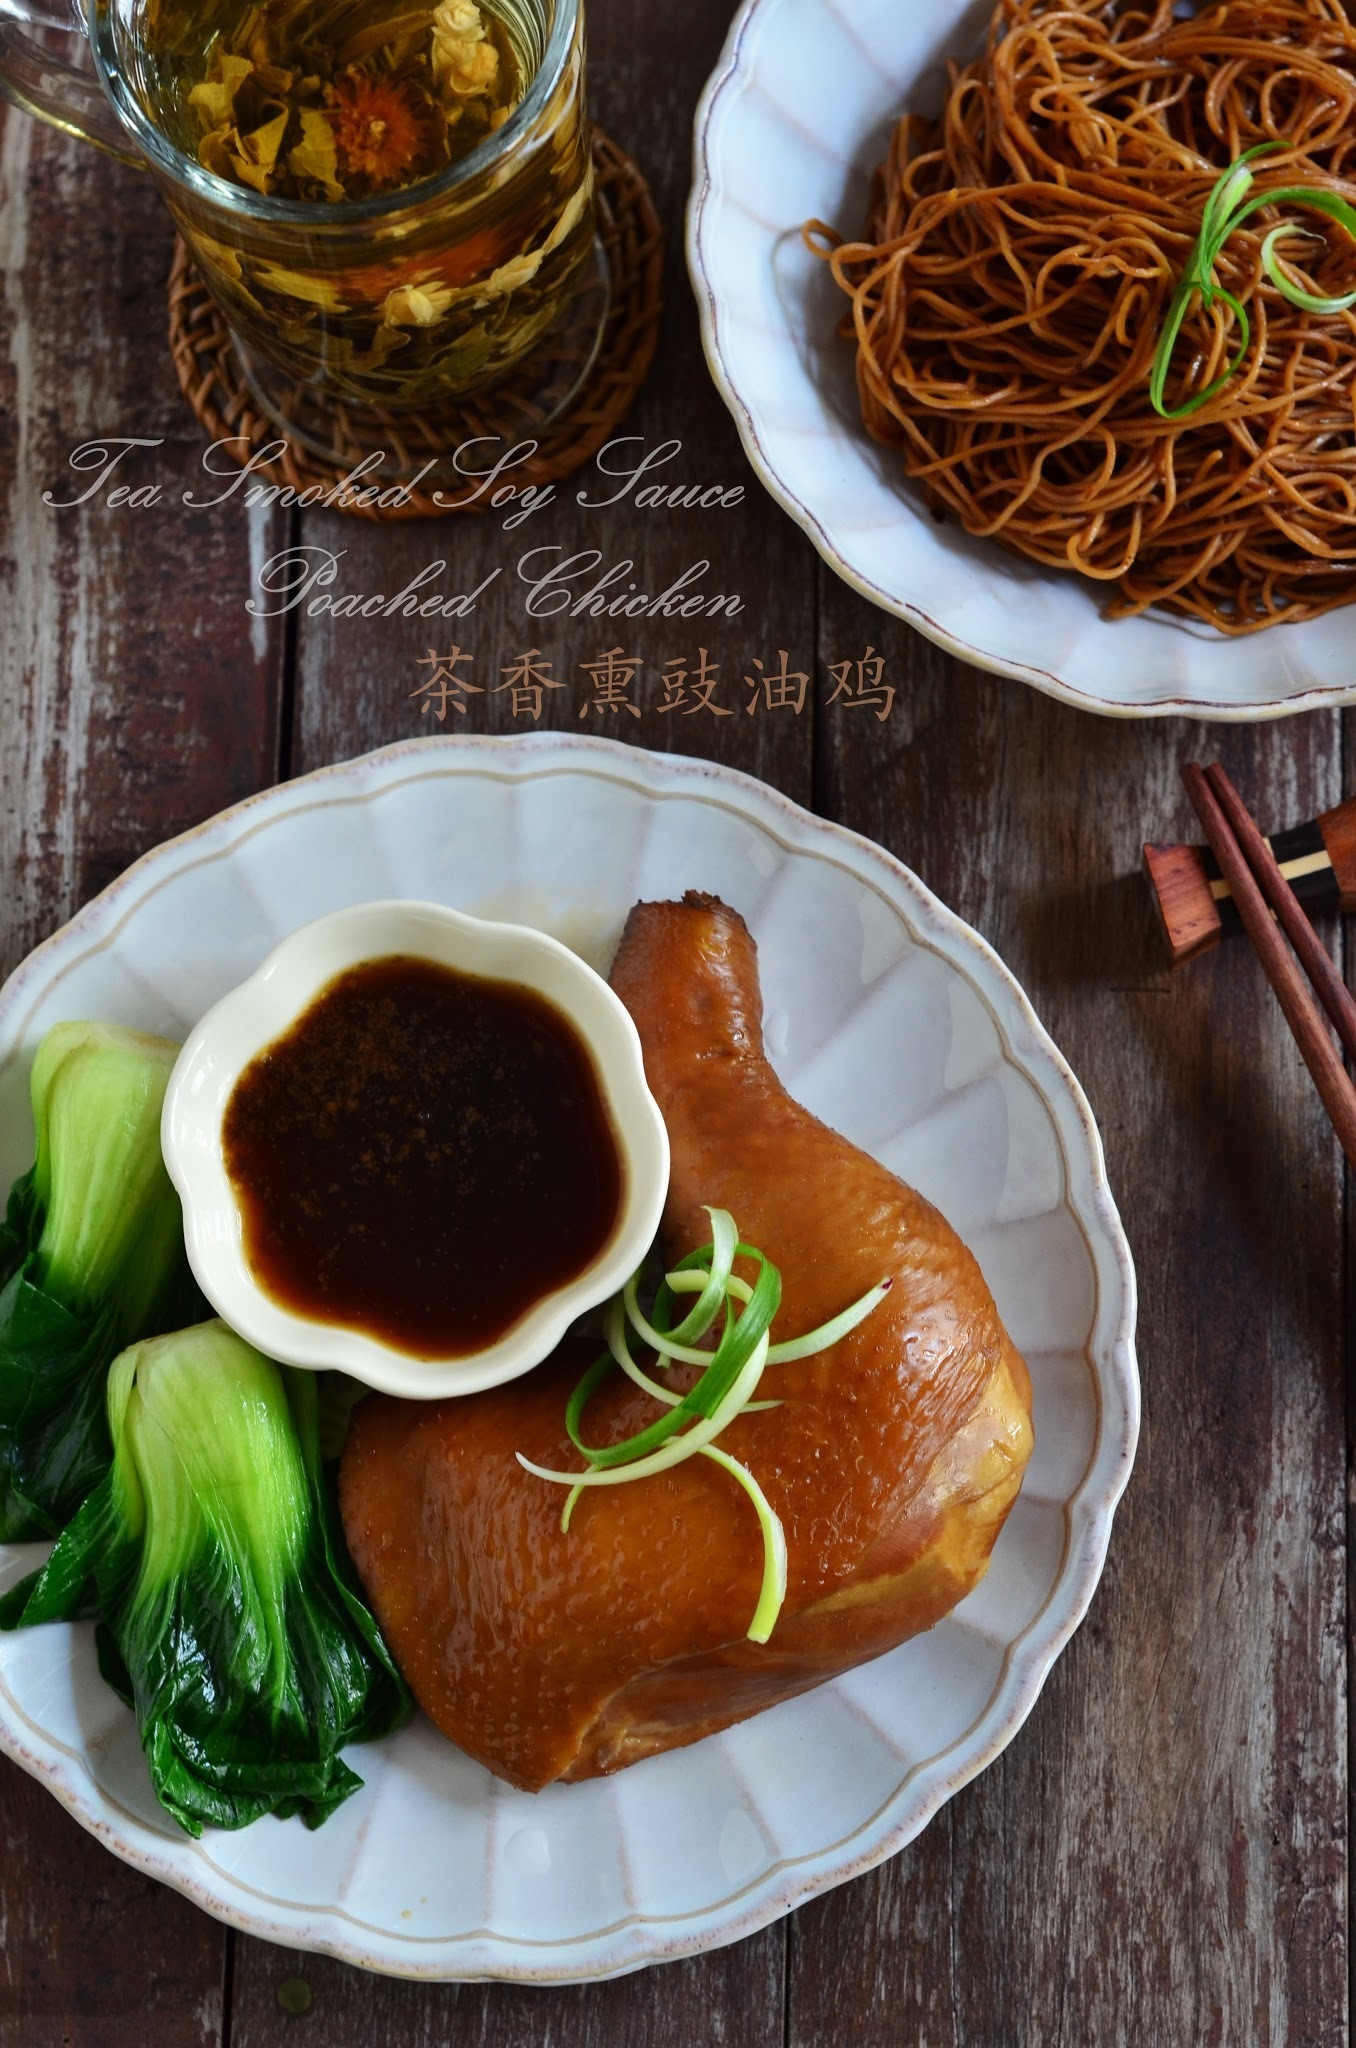 茶香熏豉油鸡 Tea Smoked Soy Sauce Poached Chicken